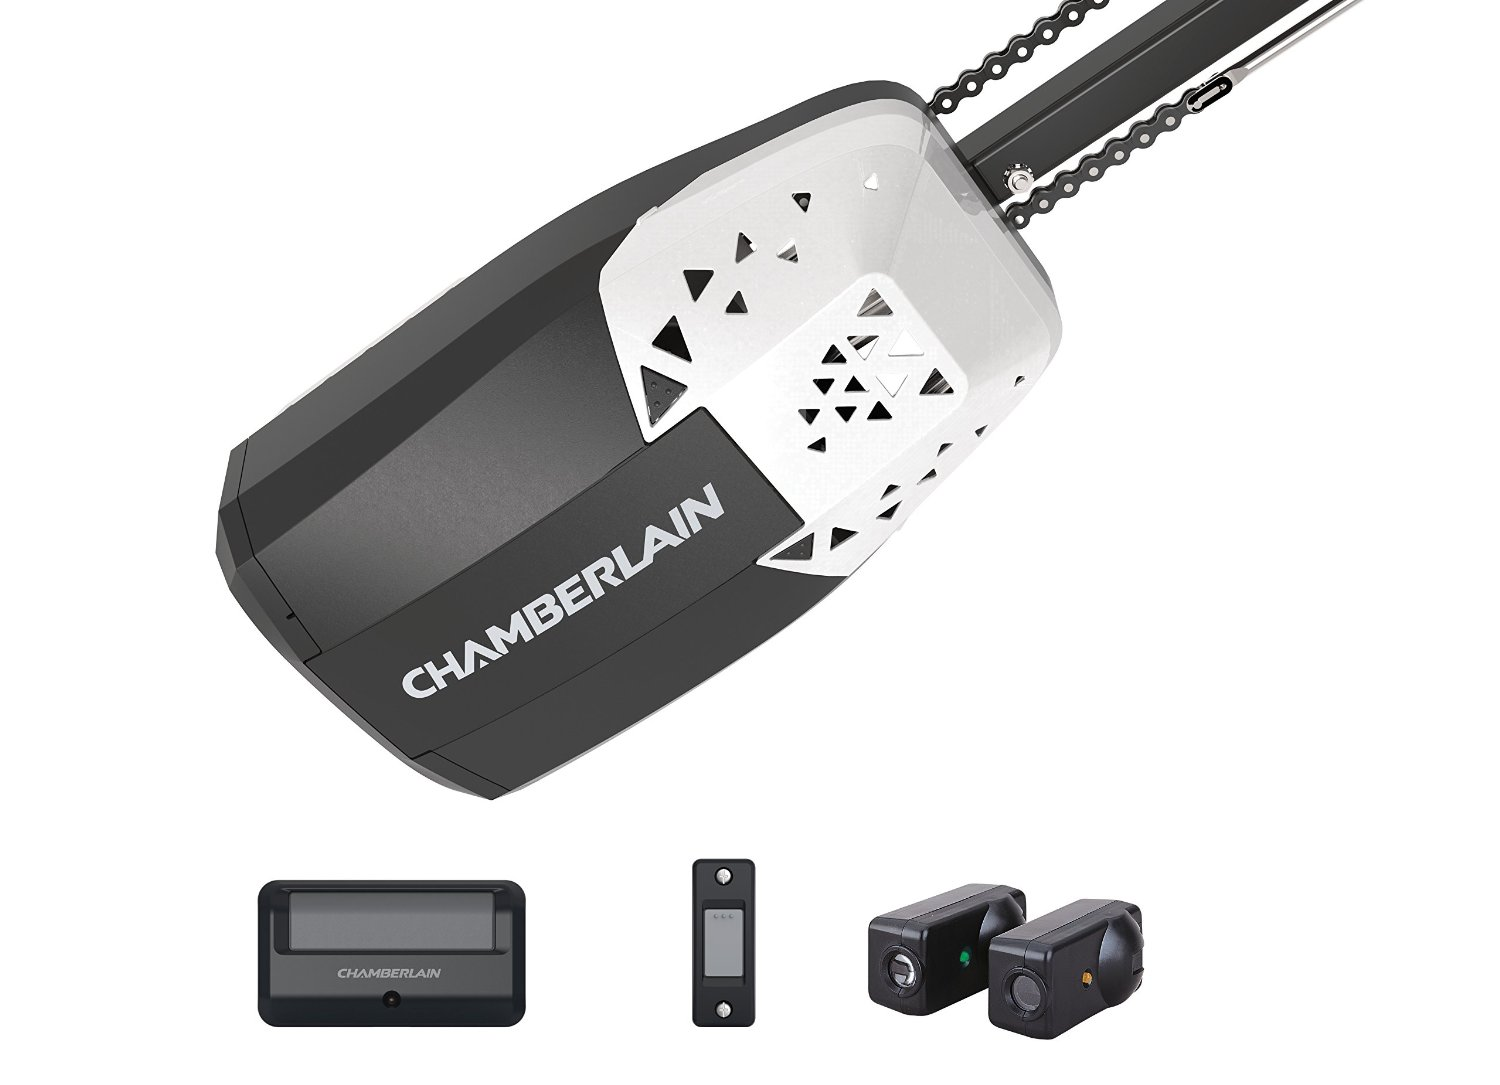 Liftmaster vs chamberlain garage door openers whereas accessories with liftmaster include universal remote 3 button mini remote and control panel equipped with motion detectors chamberlain rubansaba